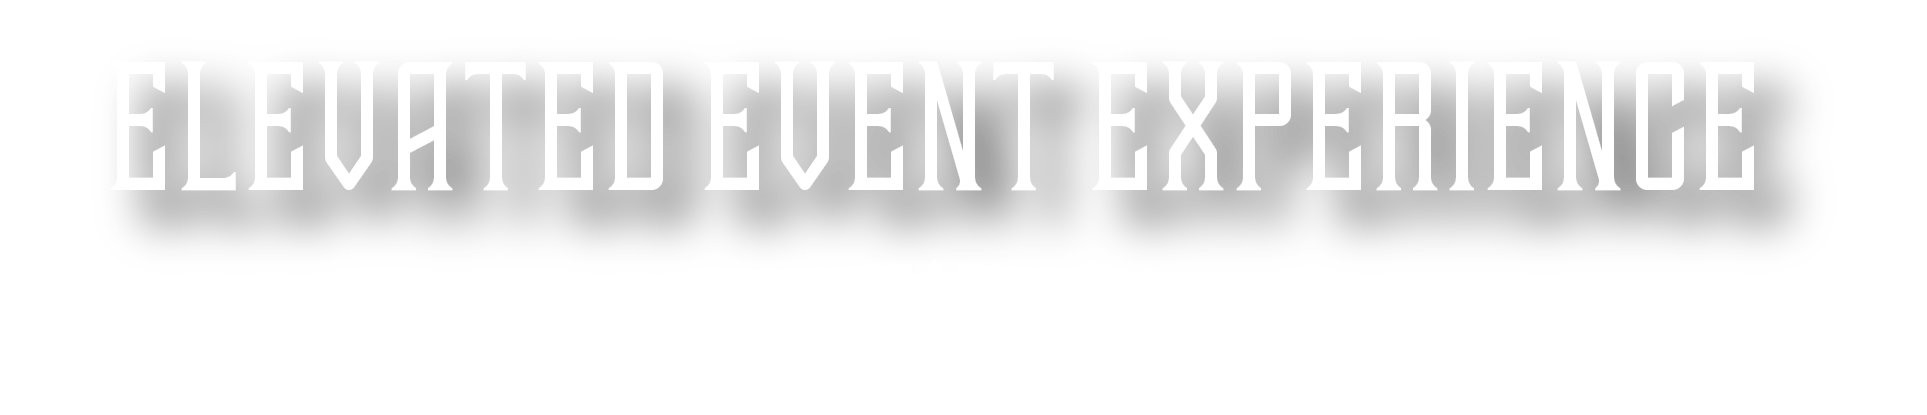 elevated event experience text only.png